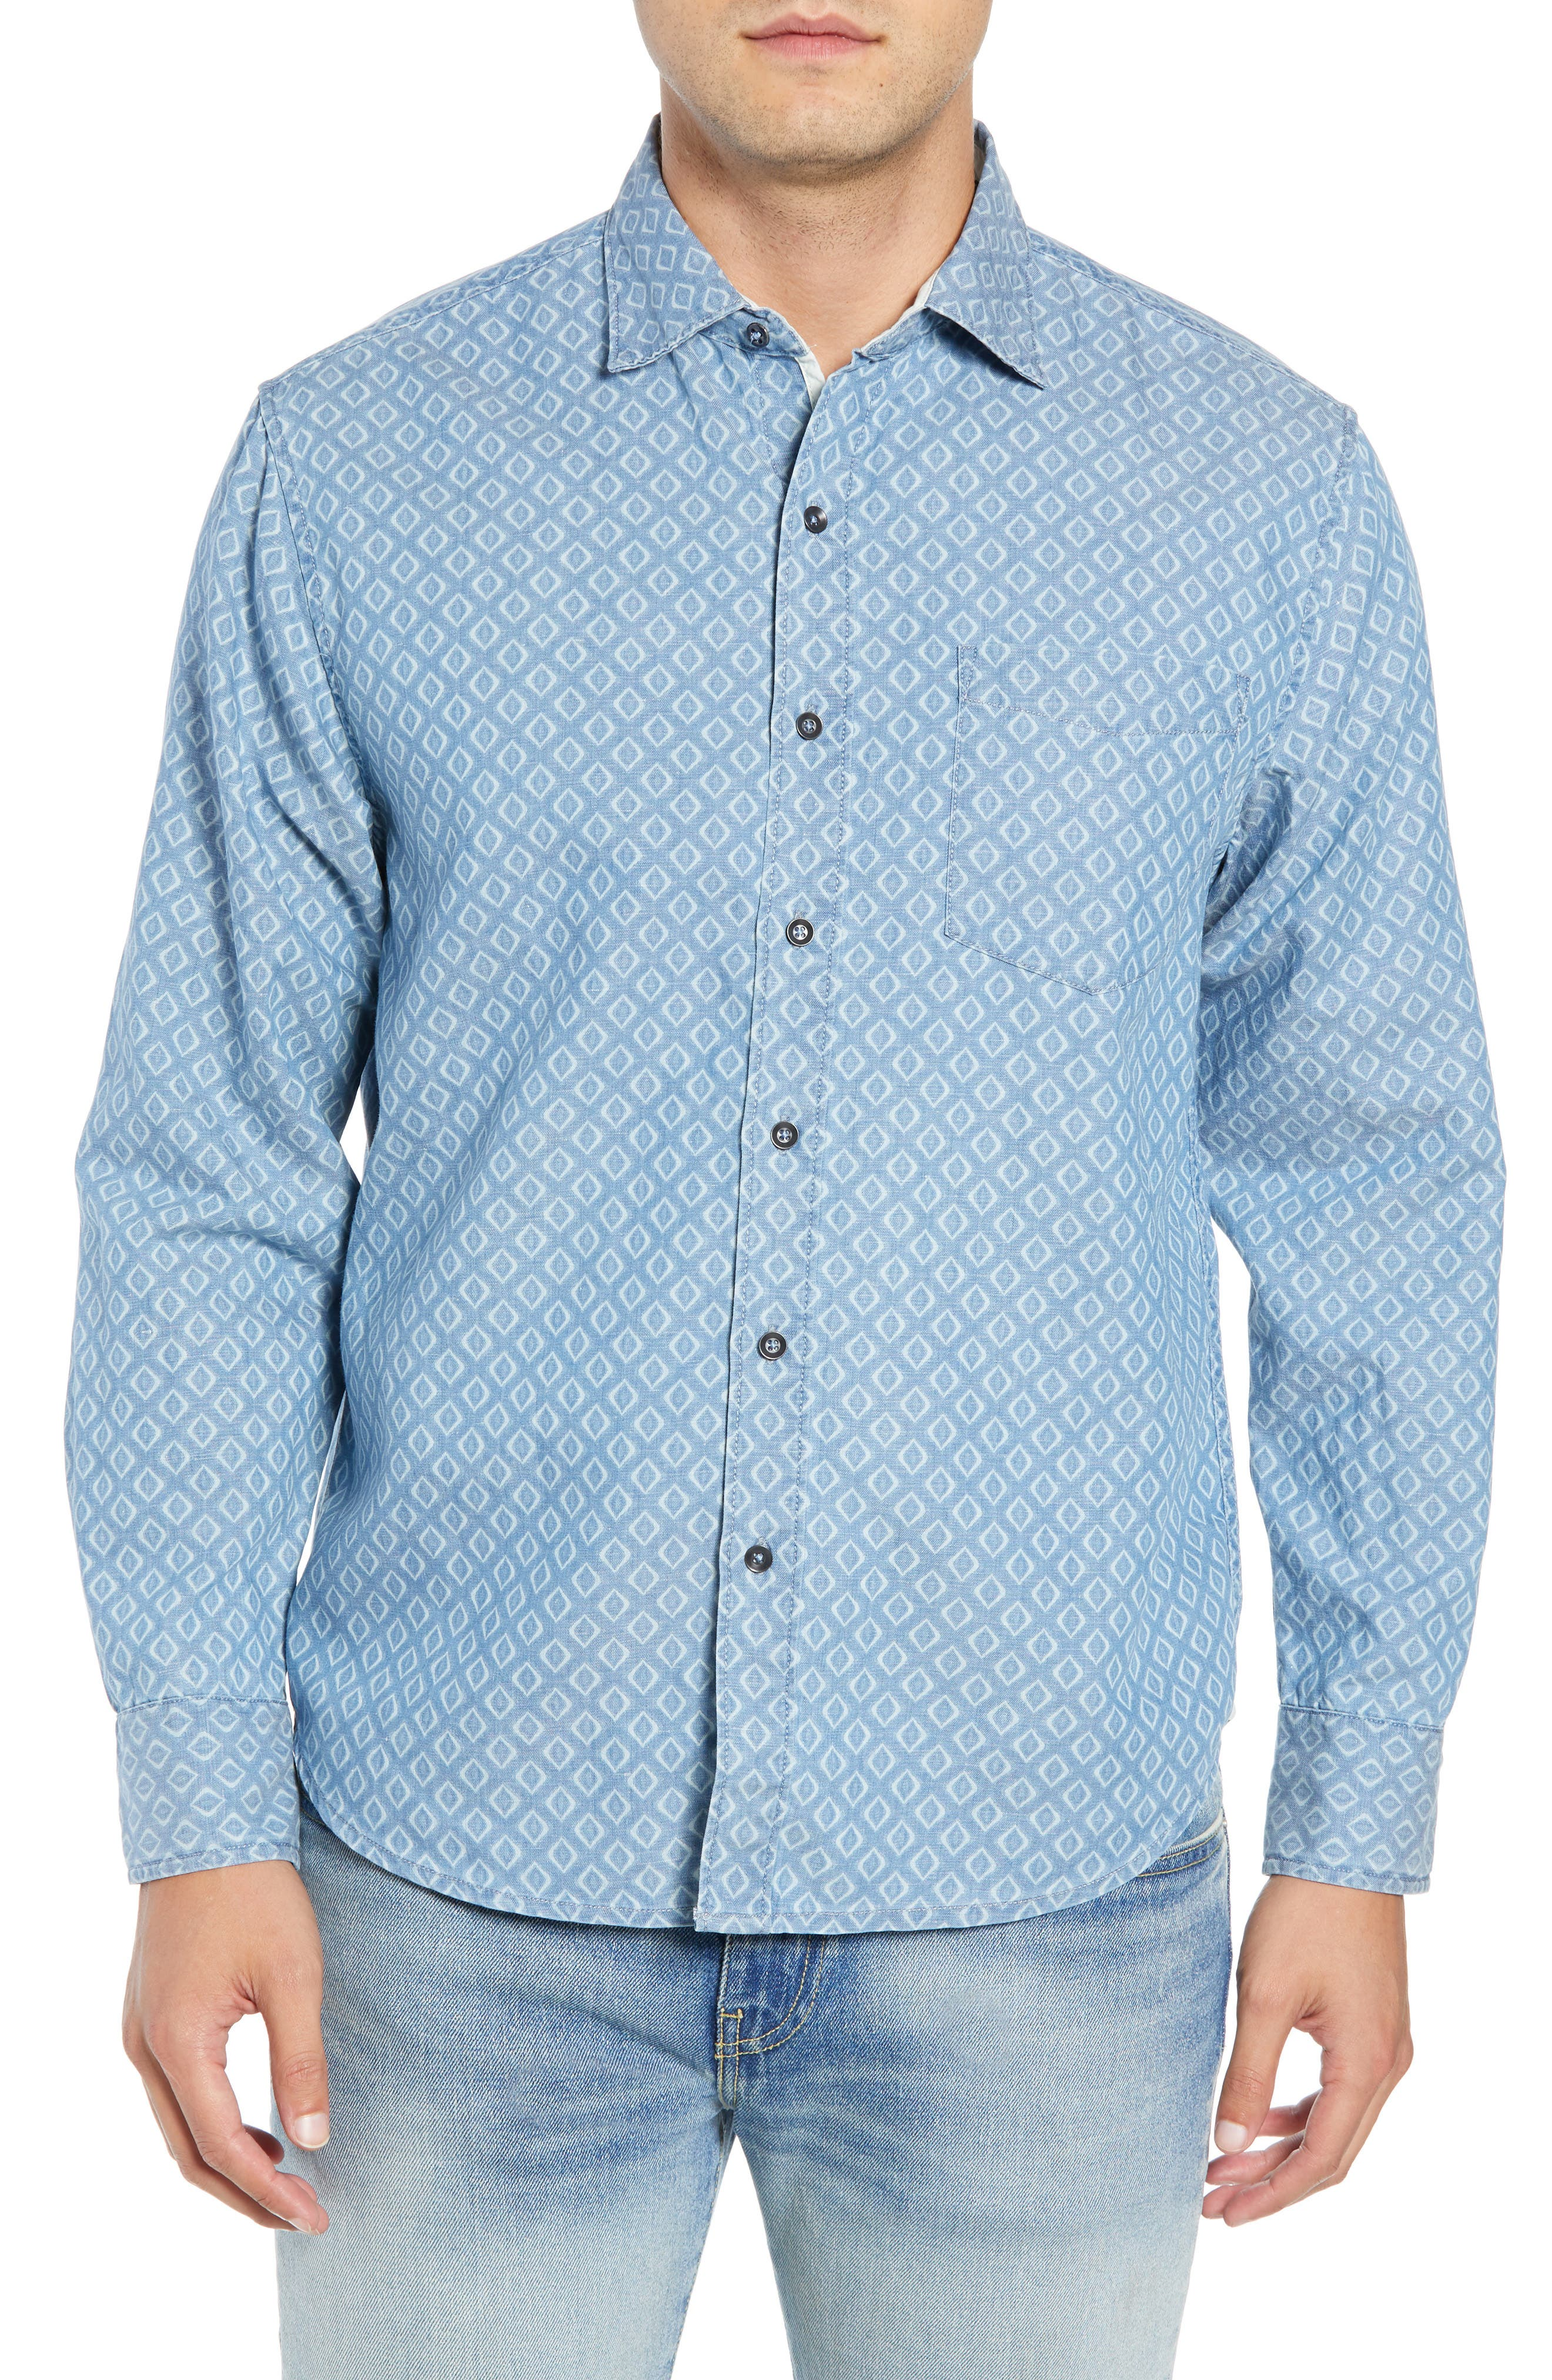 Geo Indigo Regular Fit Sport Shirt,                             Main thumbnail 1, color,                             400